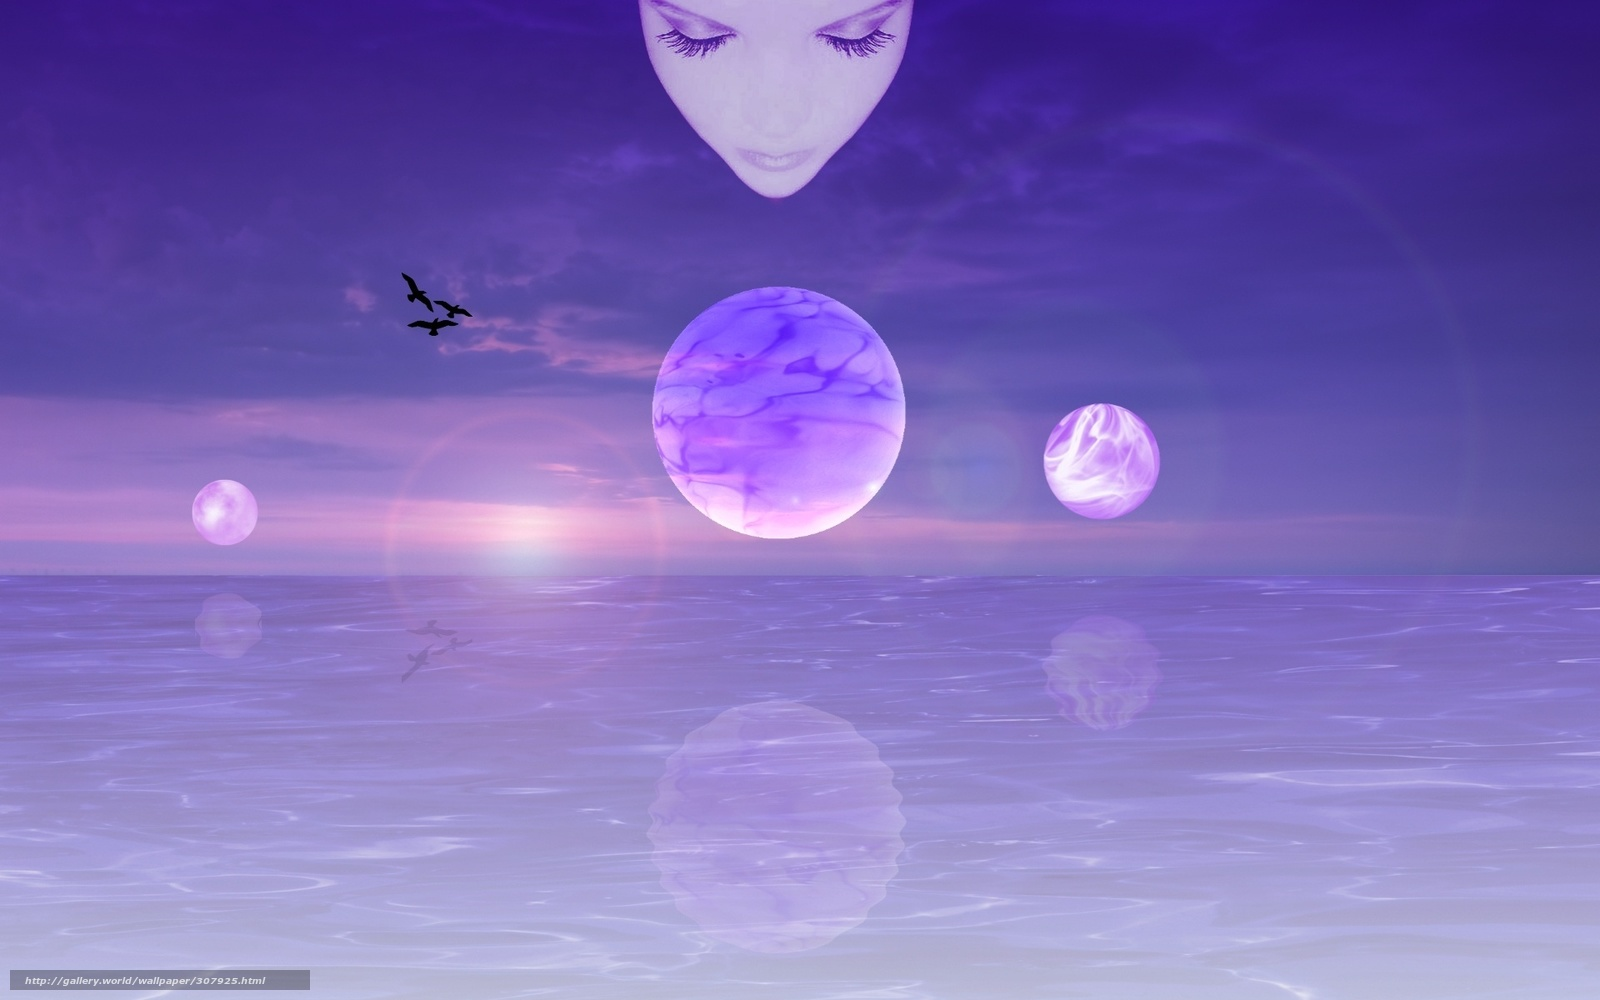 Download wallpaper meditation flight thought free - Wallpaper picture ...